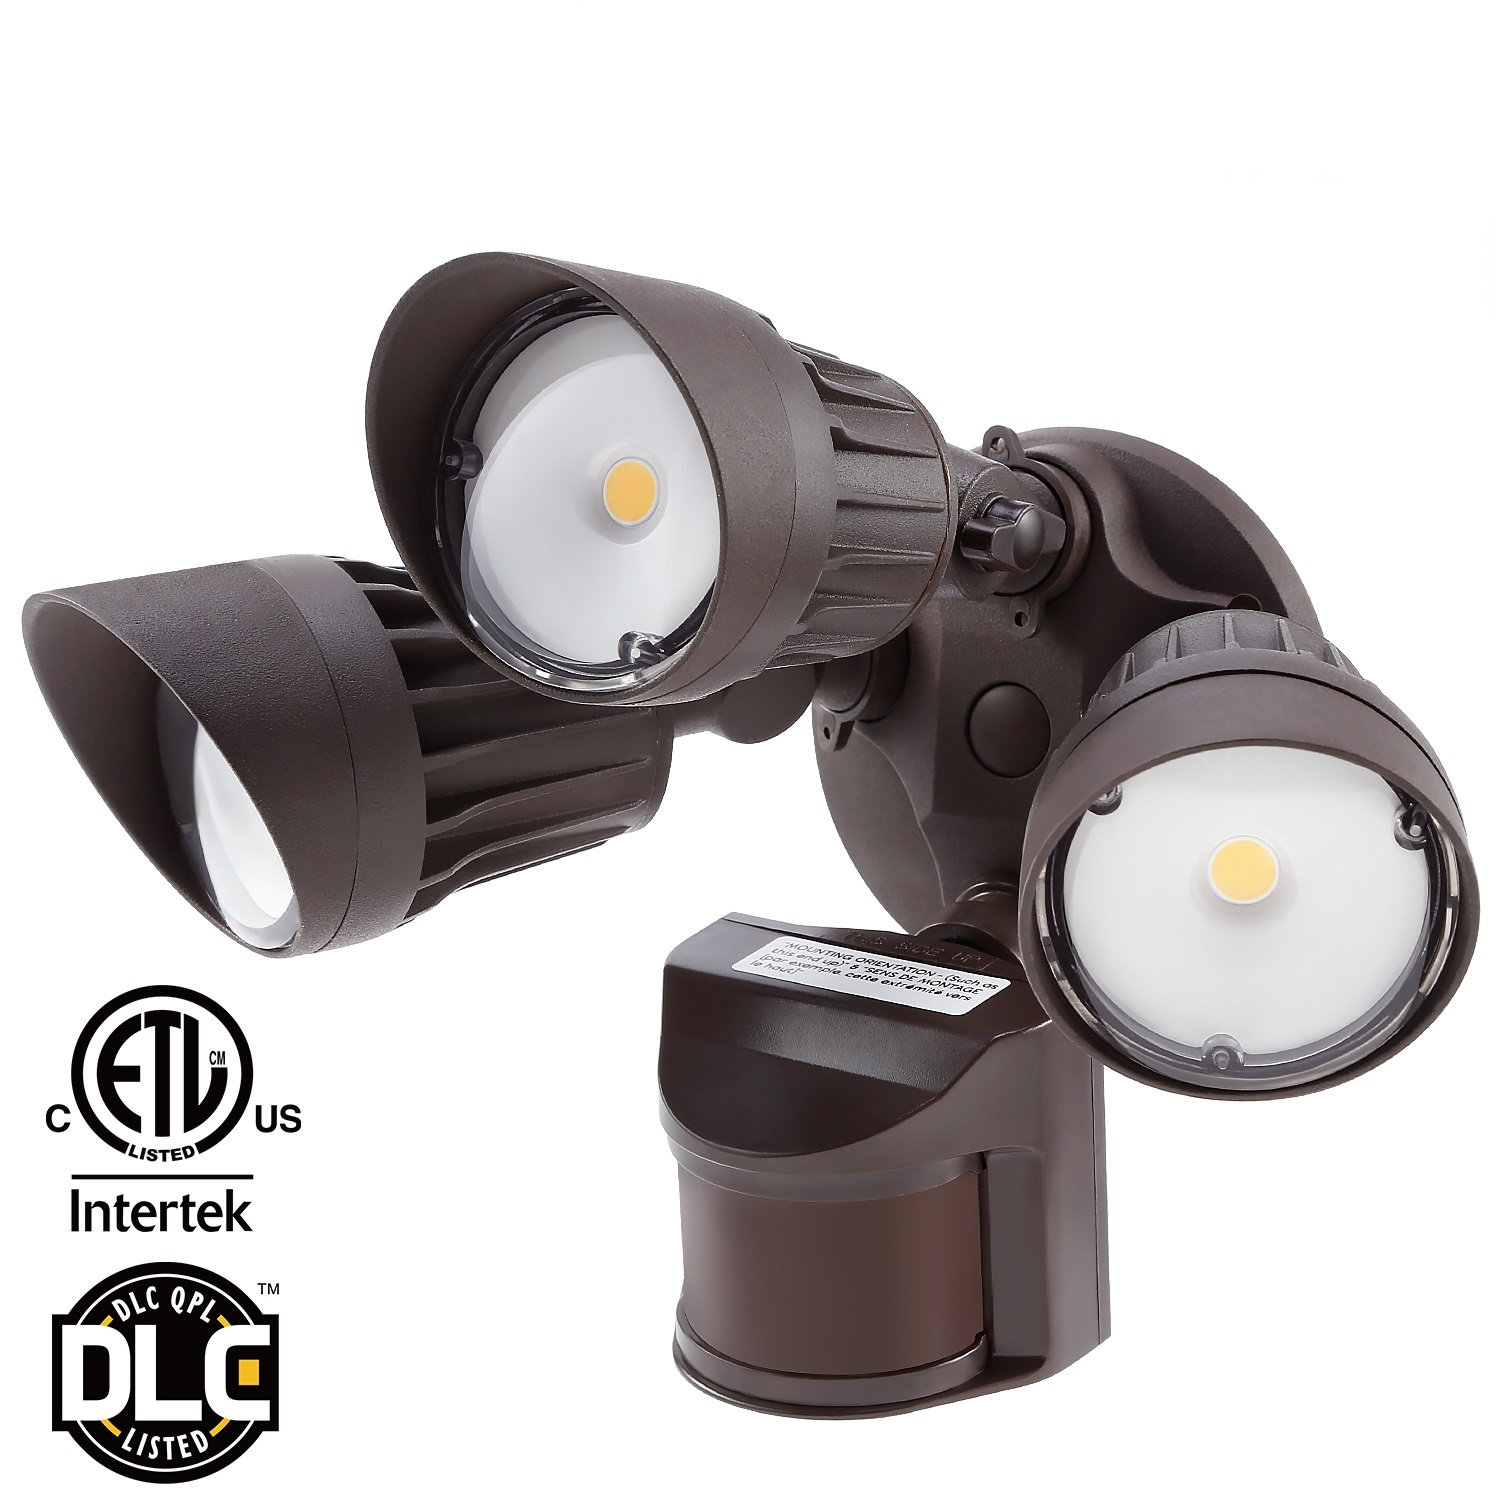 LEONLITE 30W 3-Head Motion Activated LED Outdoor Security Light, LED Flood Light for Entryways, Patios, Decks, Stairs, 3 Work Modes, 5000K Daylight, Bronze